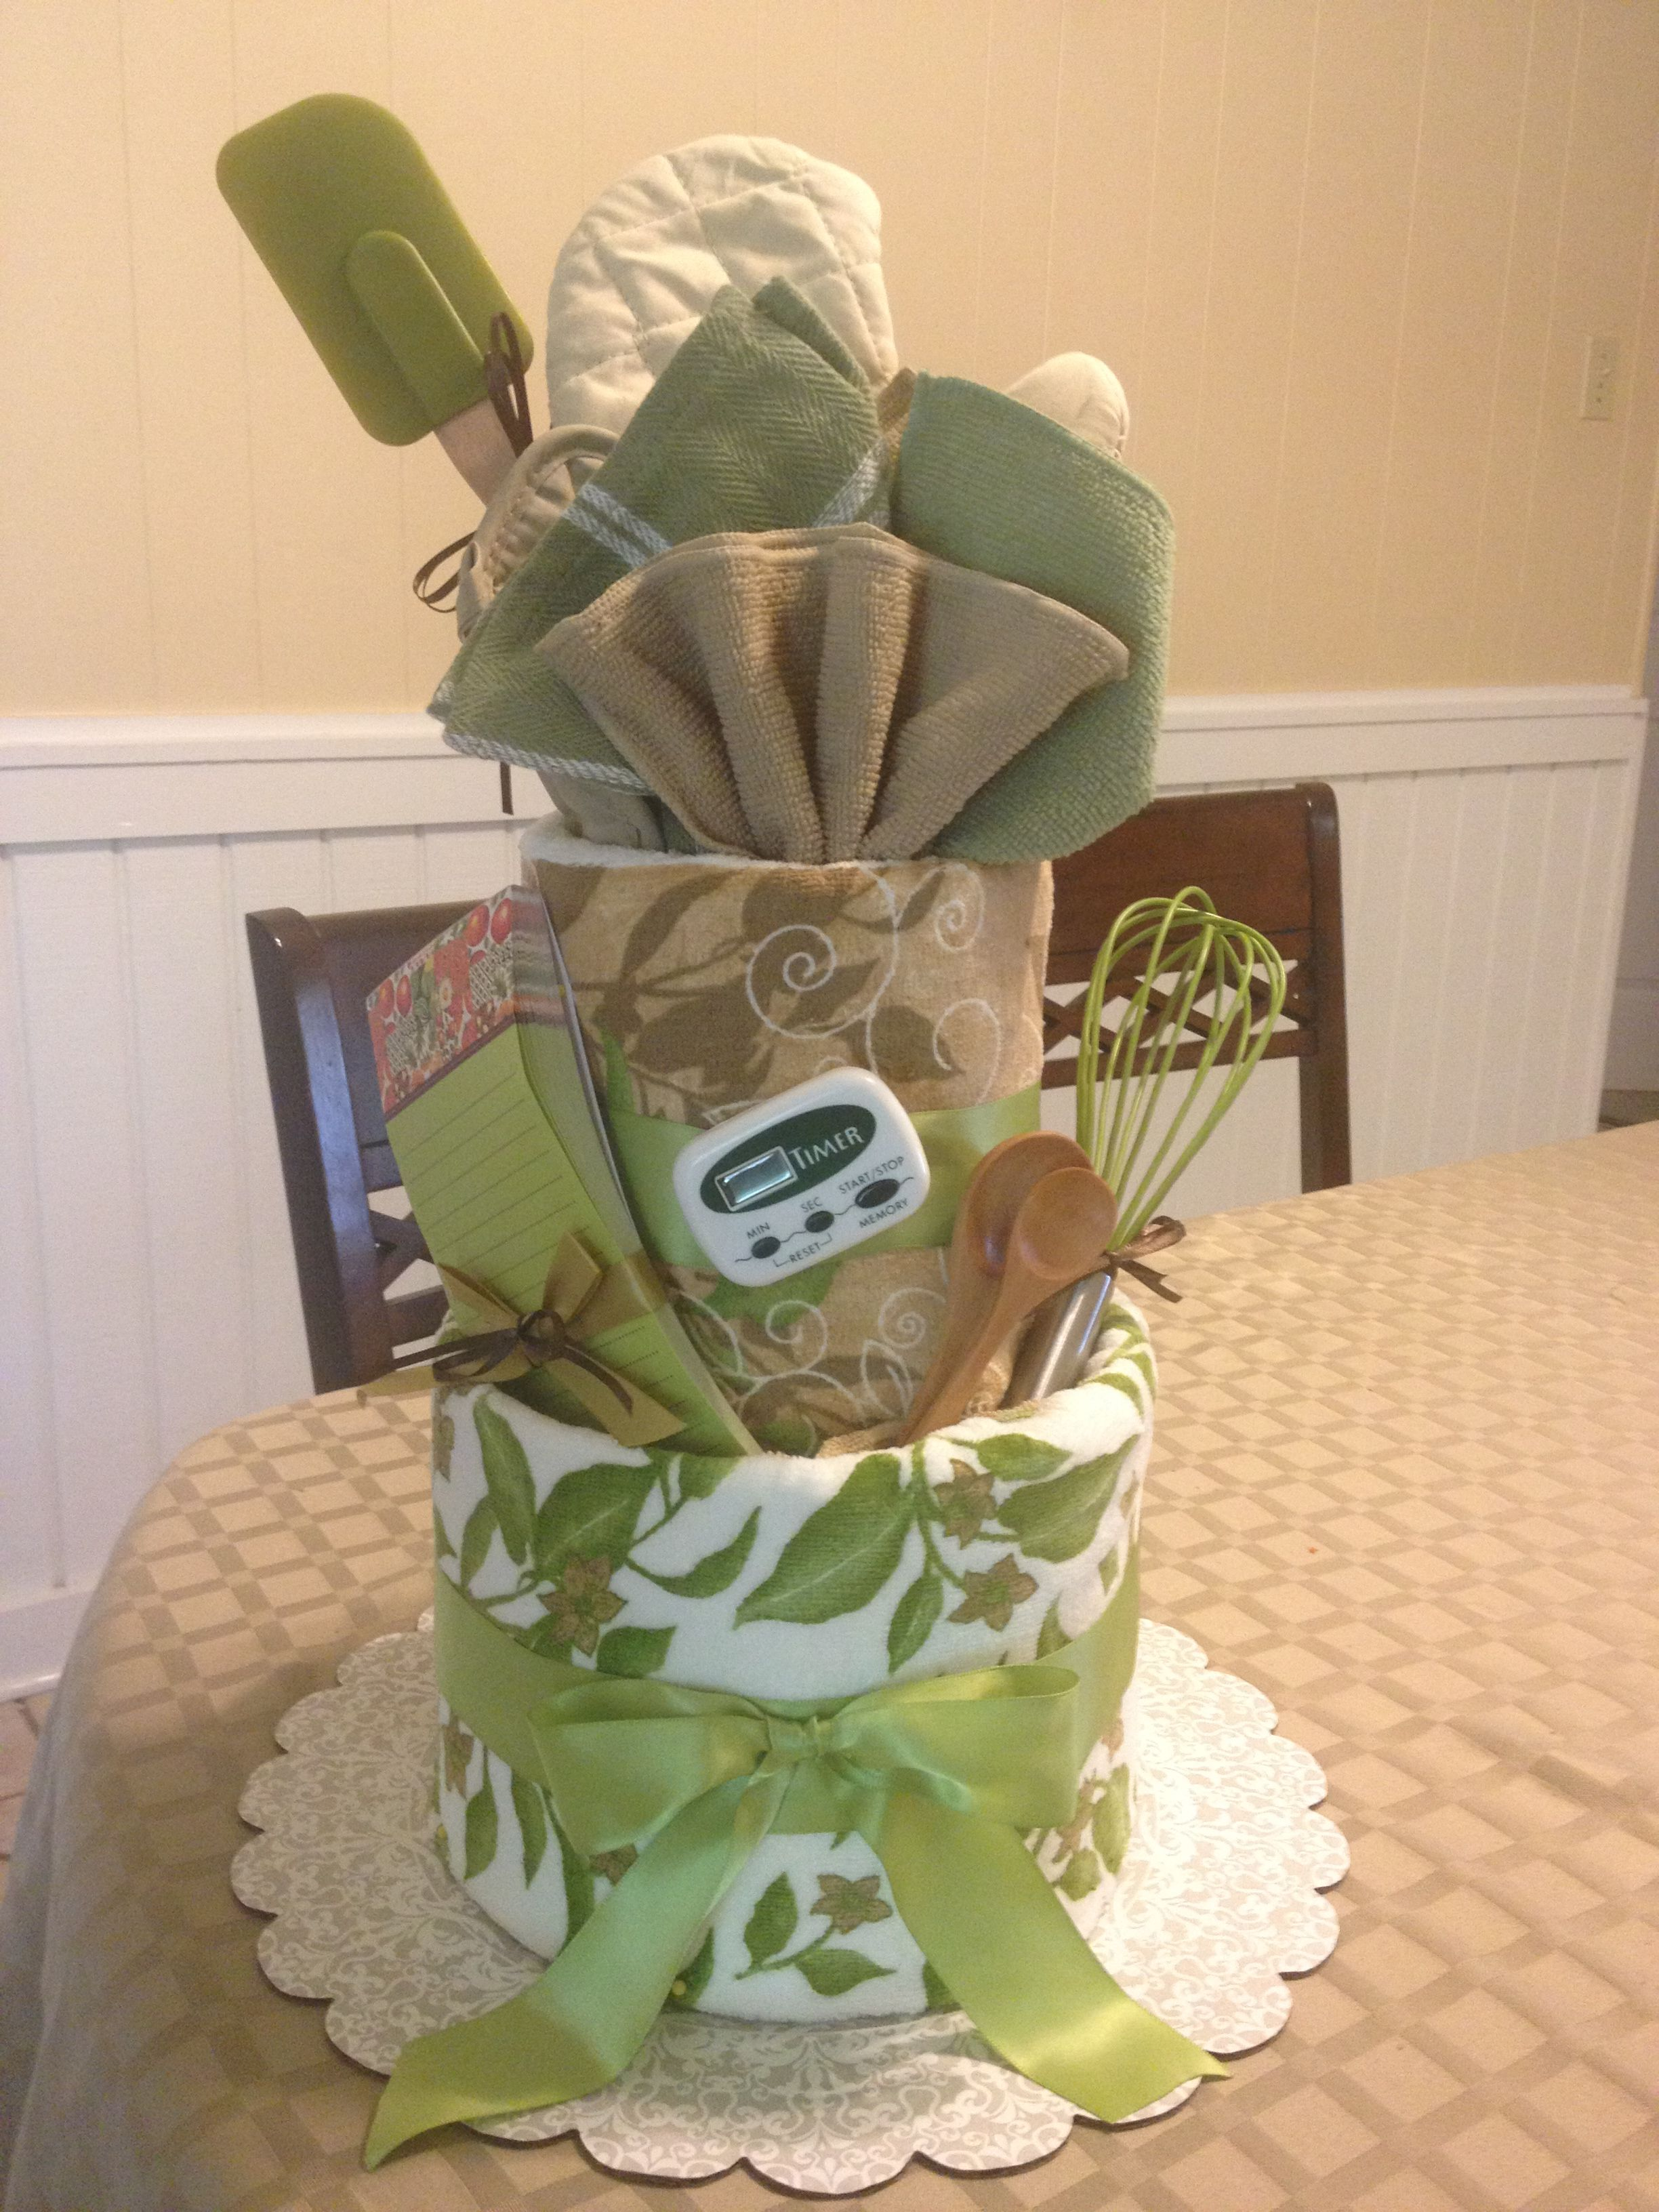 Bridal shower towel cake (just one of many examples